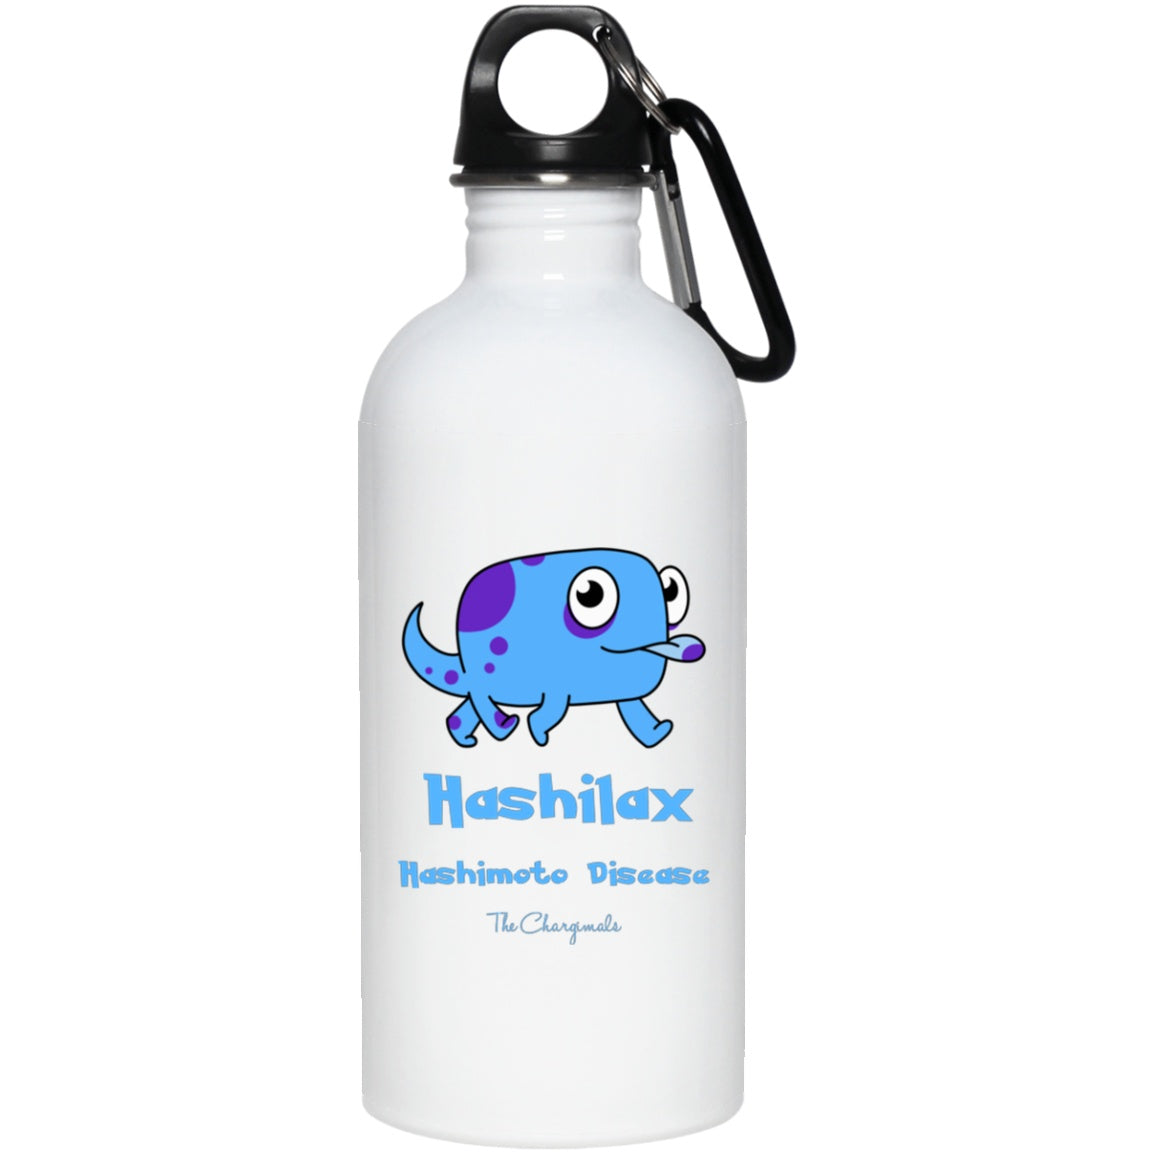 Hashi the Hashimoto Disease Monster Mug, Travel Mug And Water Bottle - The Unchargeables